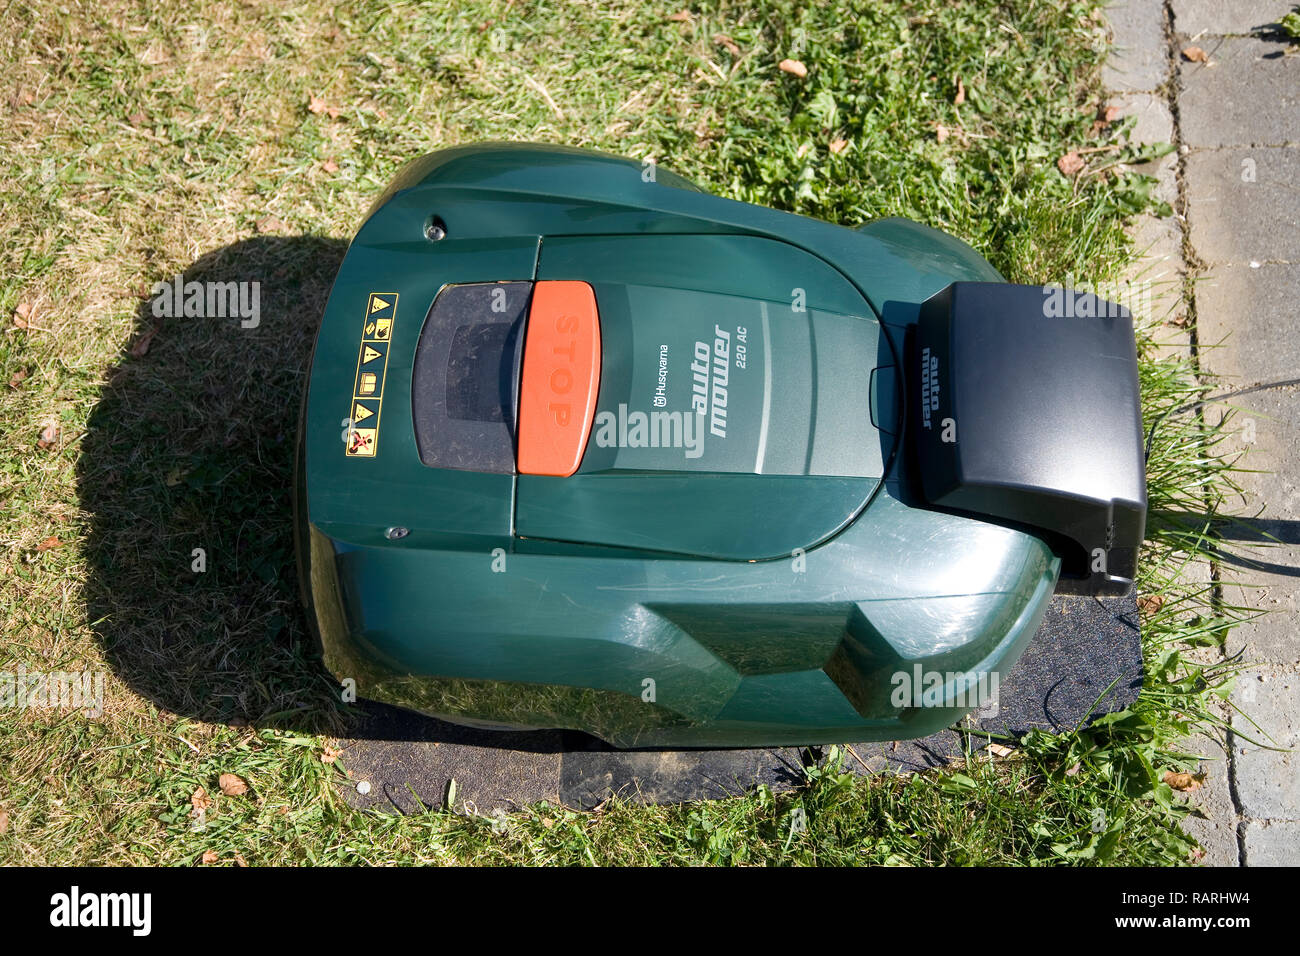 Green automatic robot lawnmower docked in its charging station near a patio, top view Stock Photo